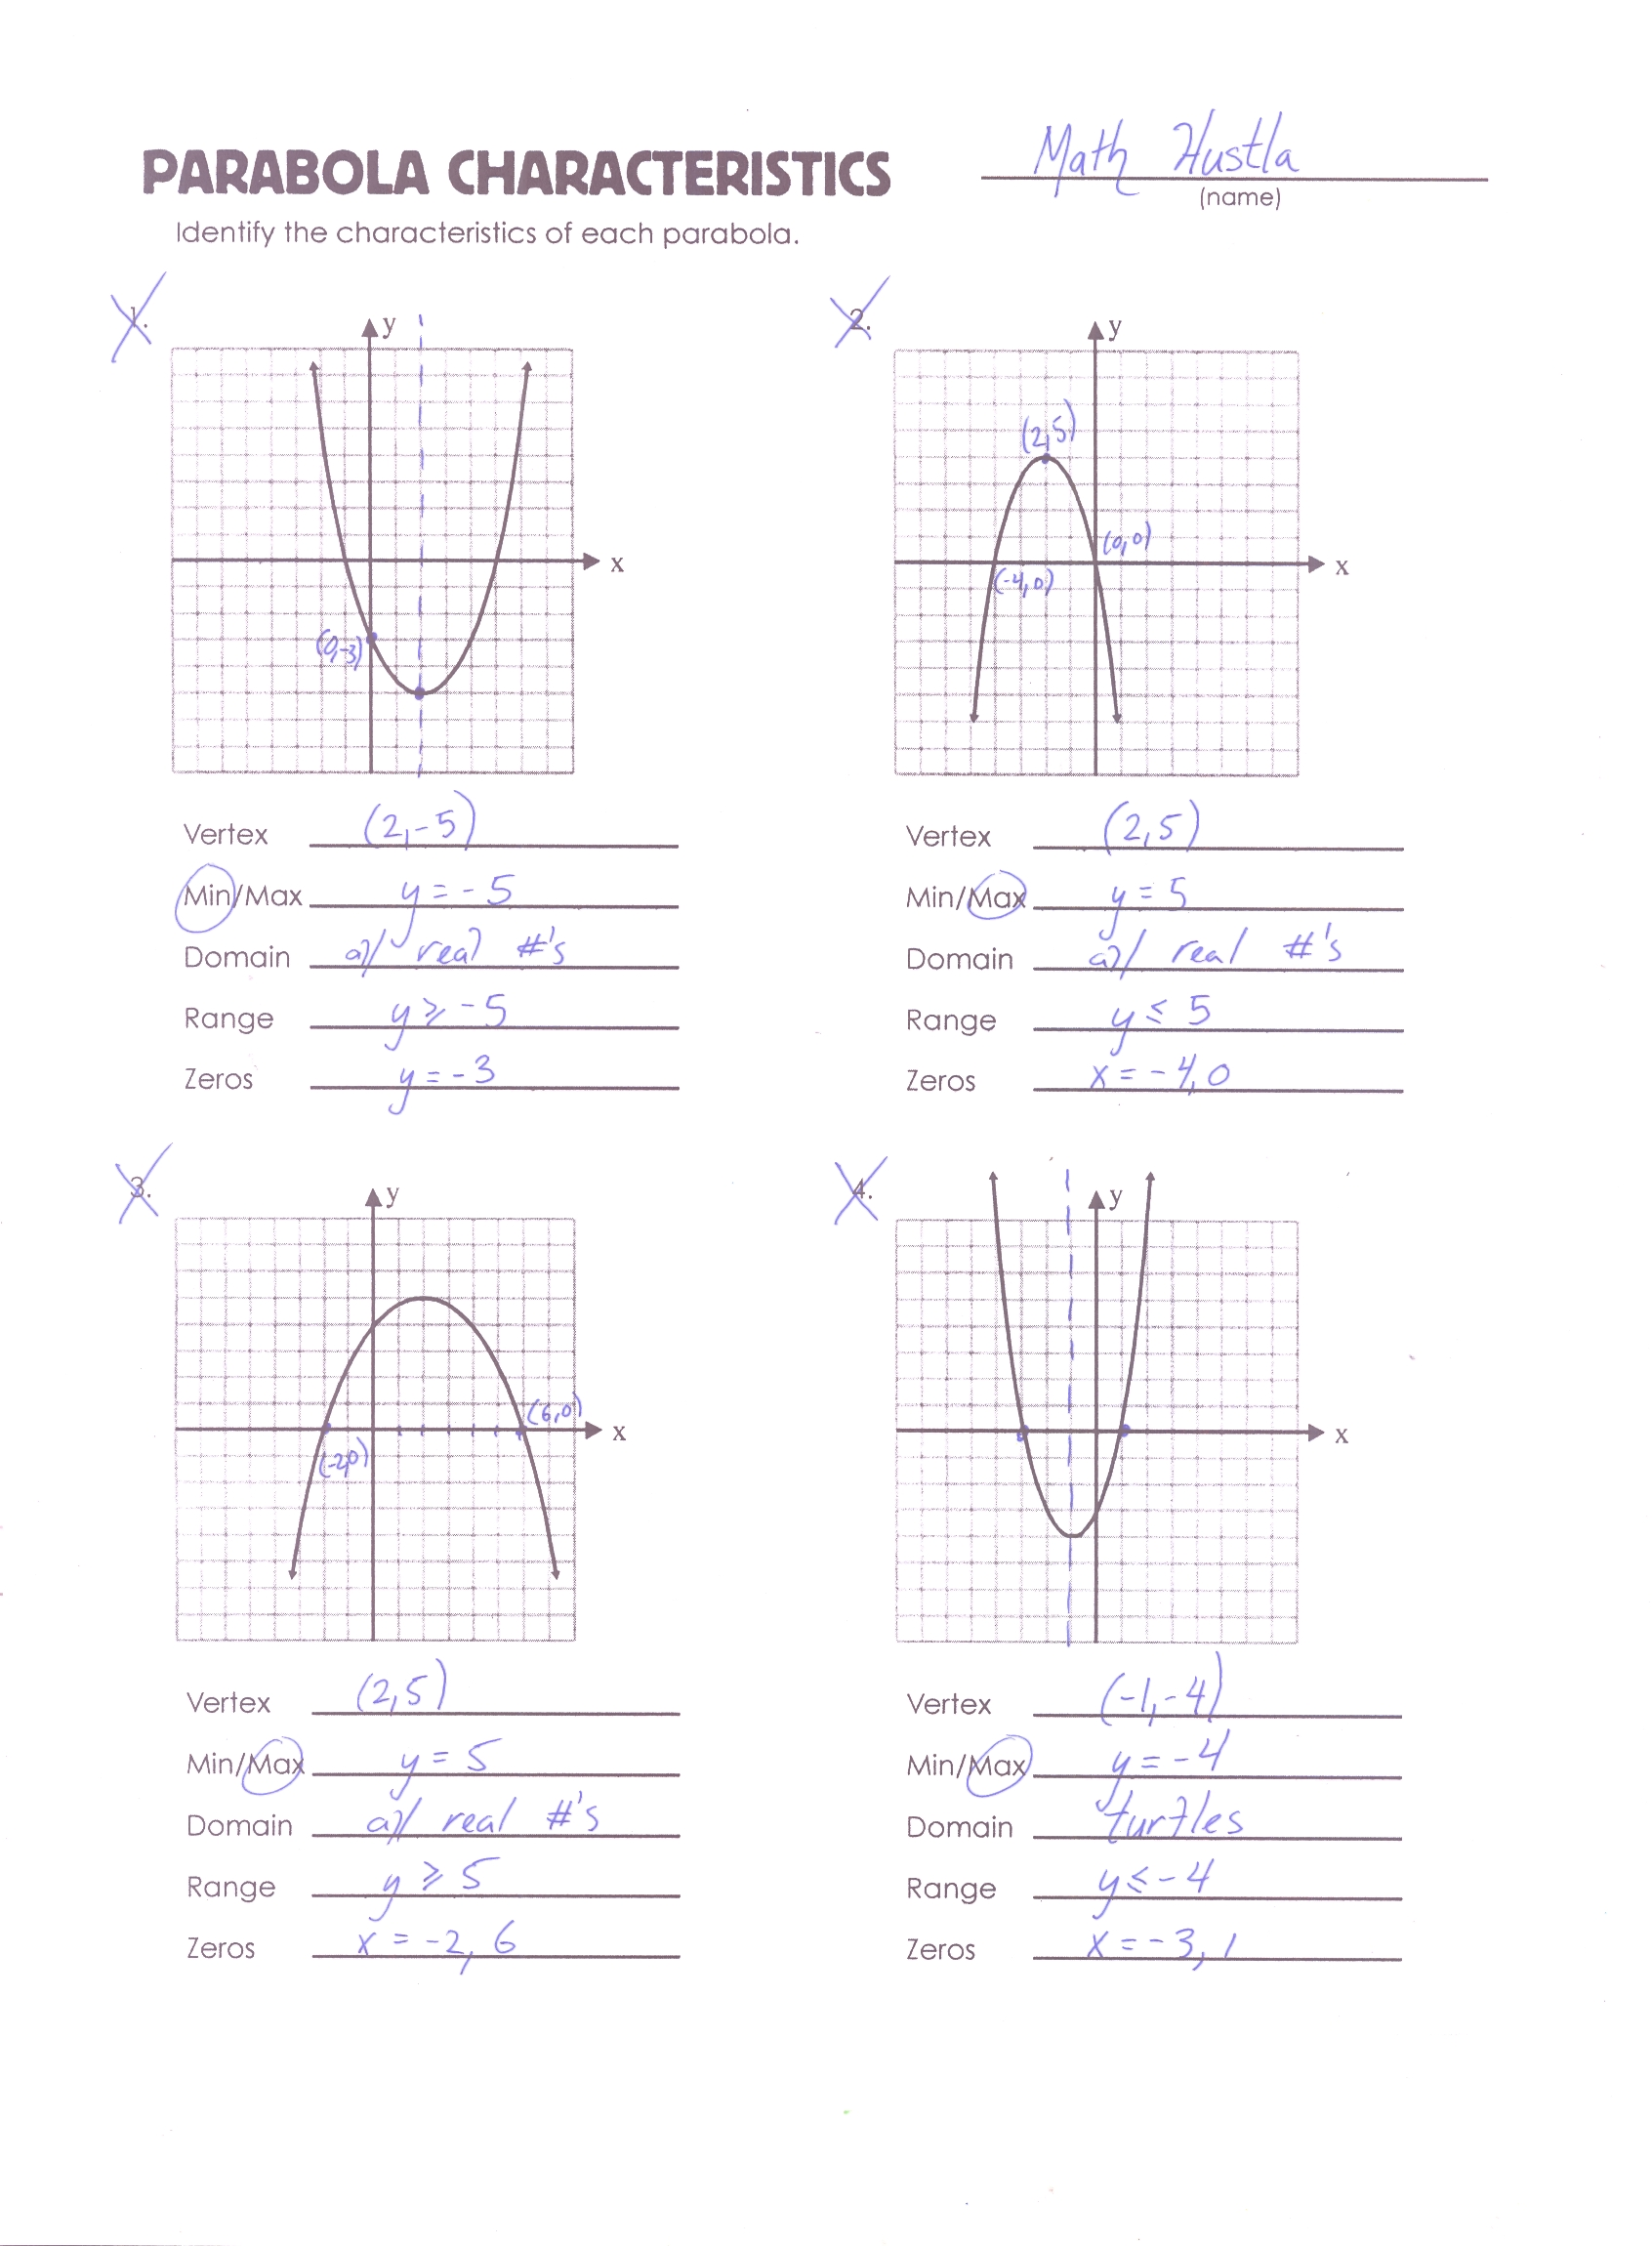 Learning Worksheets For Kindergarten Insects Spider Worksheets Kindergarten Butterfly Worksheets Kindergarten Insect Worksheets First Grade X in addition Rd Grade Division Problems Ans as well Funky Function Tables additionally Circle Bthe B S also Basic Money Counting Worksheets. on first grade math word problem worksheets